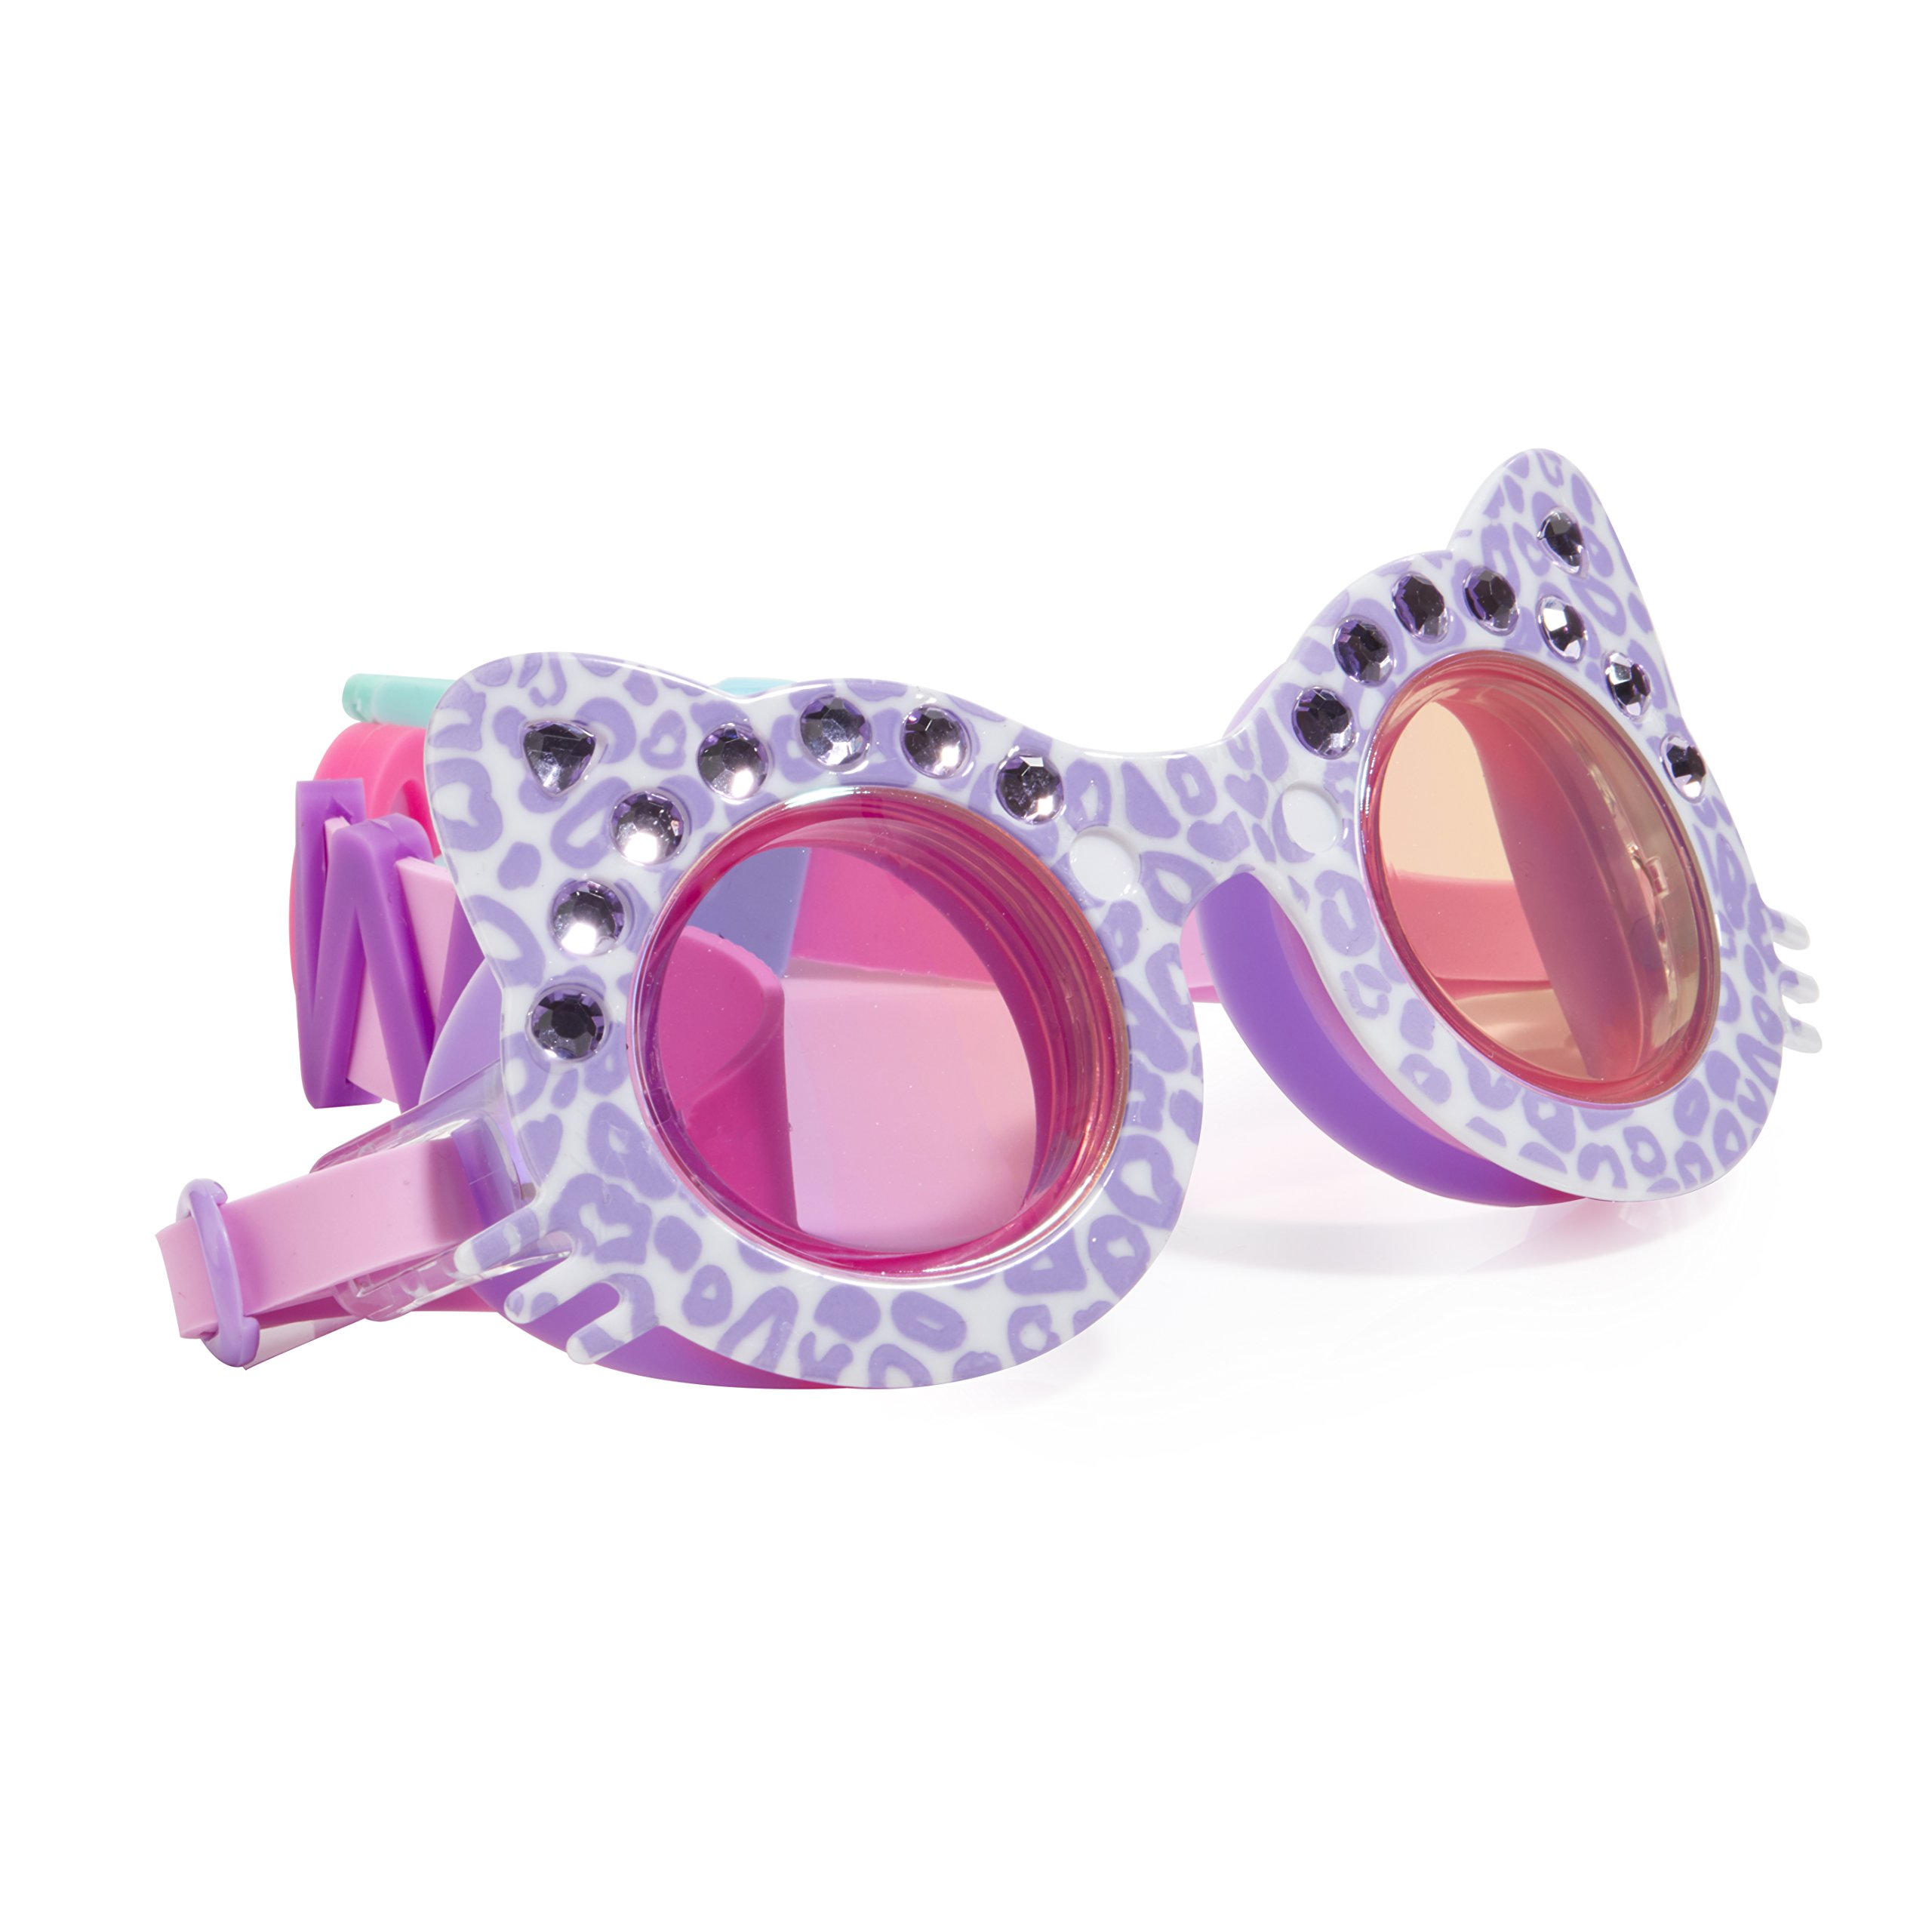 Cat Shaped Swimming Goggles For Kids by Bling2O - Anti Fog, No Leak, Non Slip and UV Protection - Mittens Purple Colored Fun Water Accessory Includes Hard Case